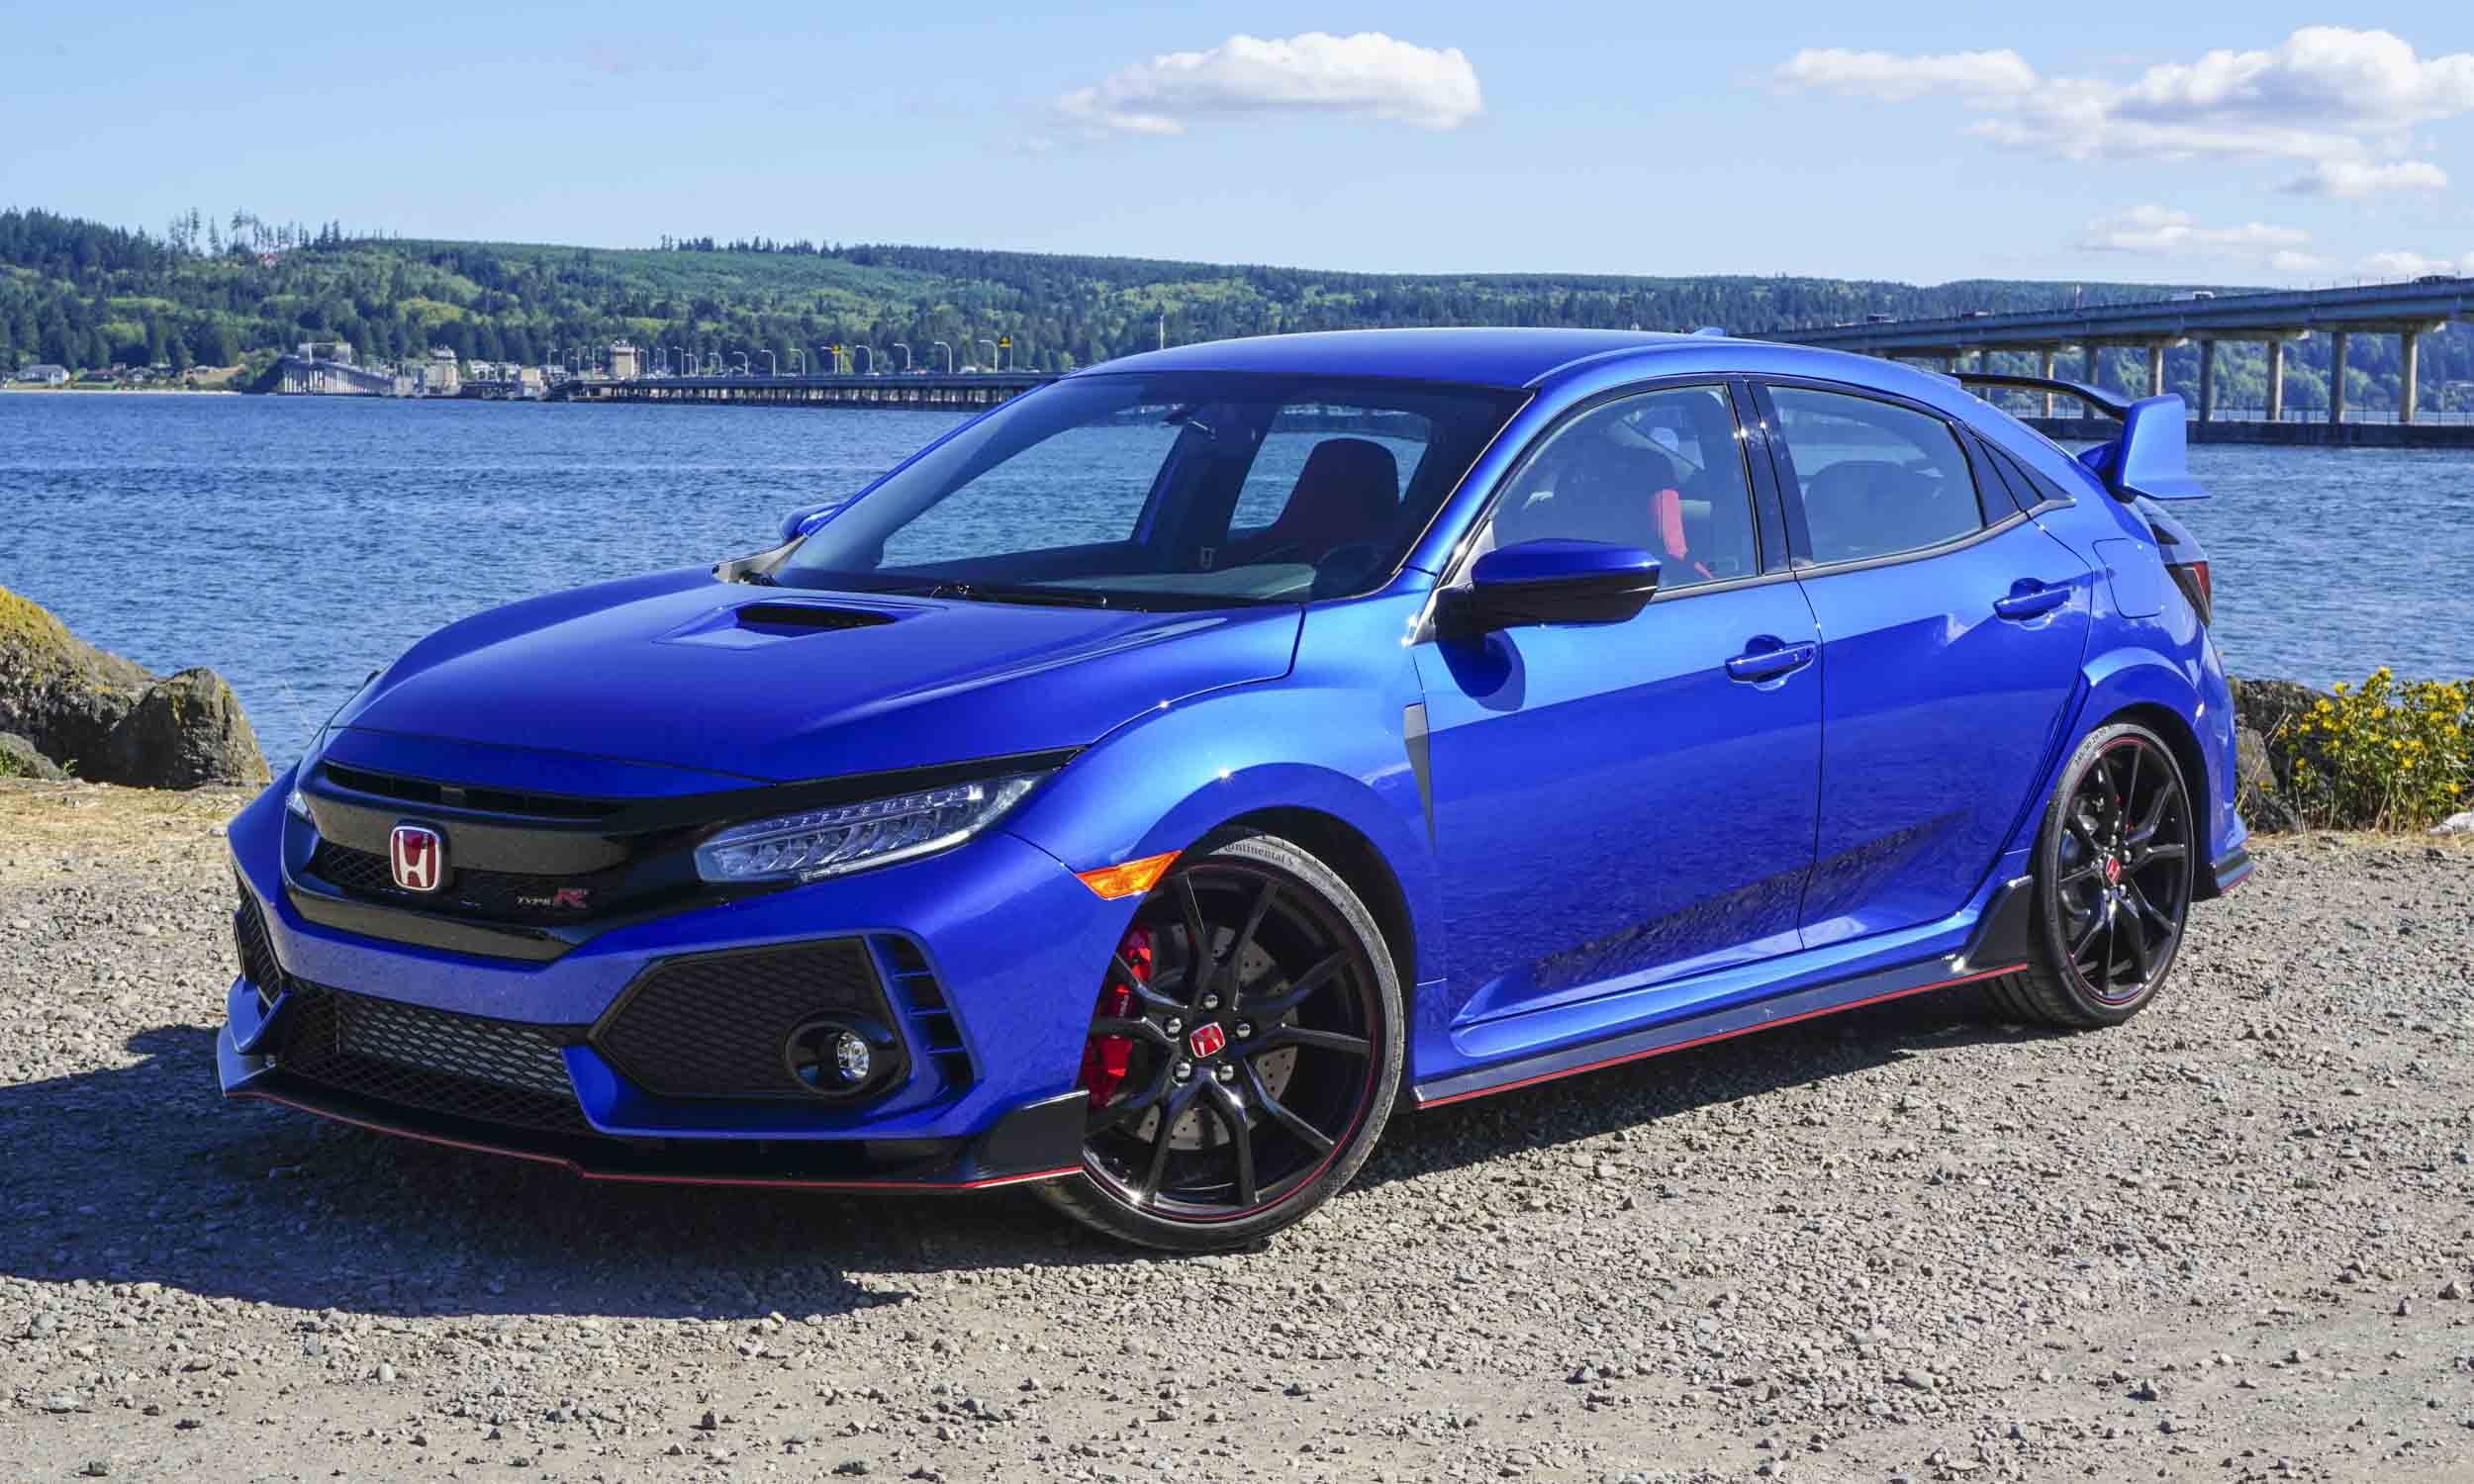 Honda Civic Type R The Beastly Hatch Updated